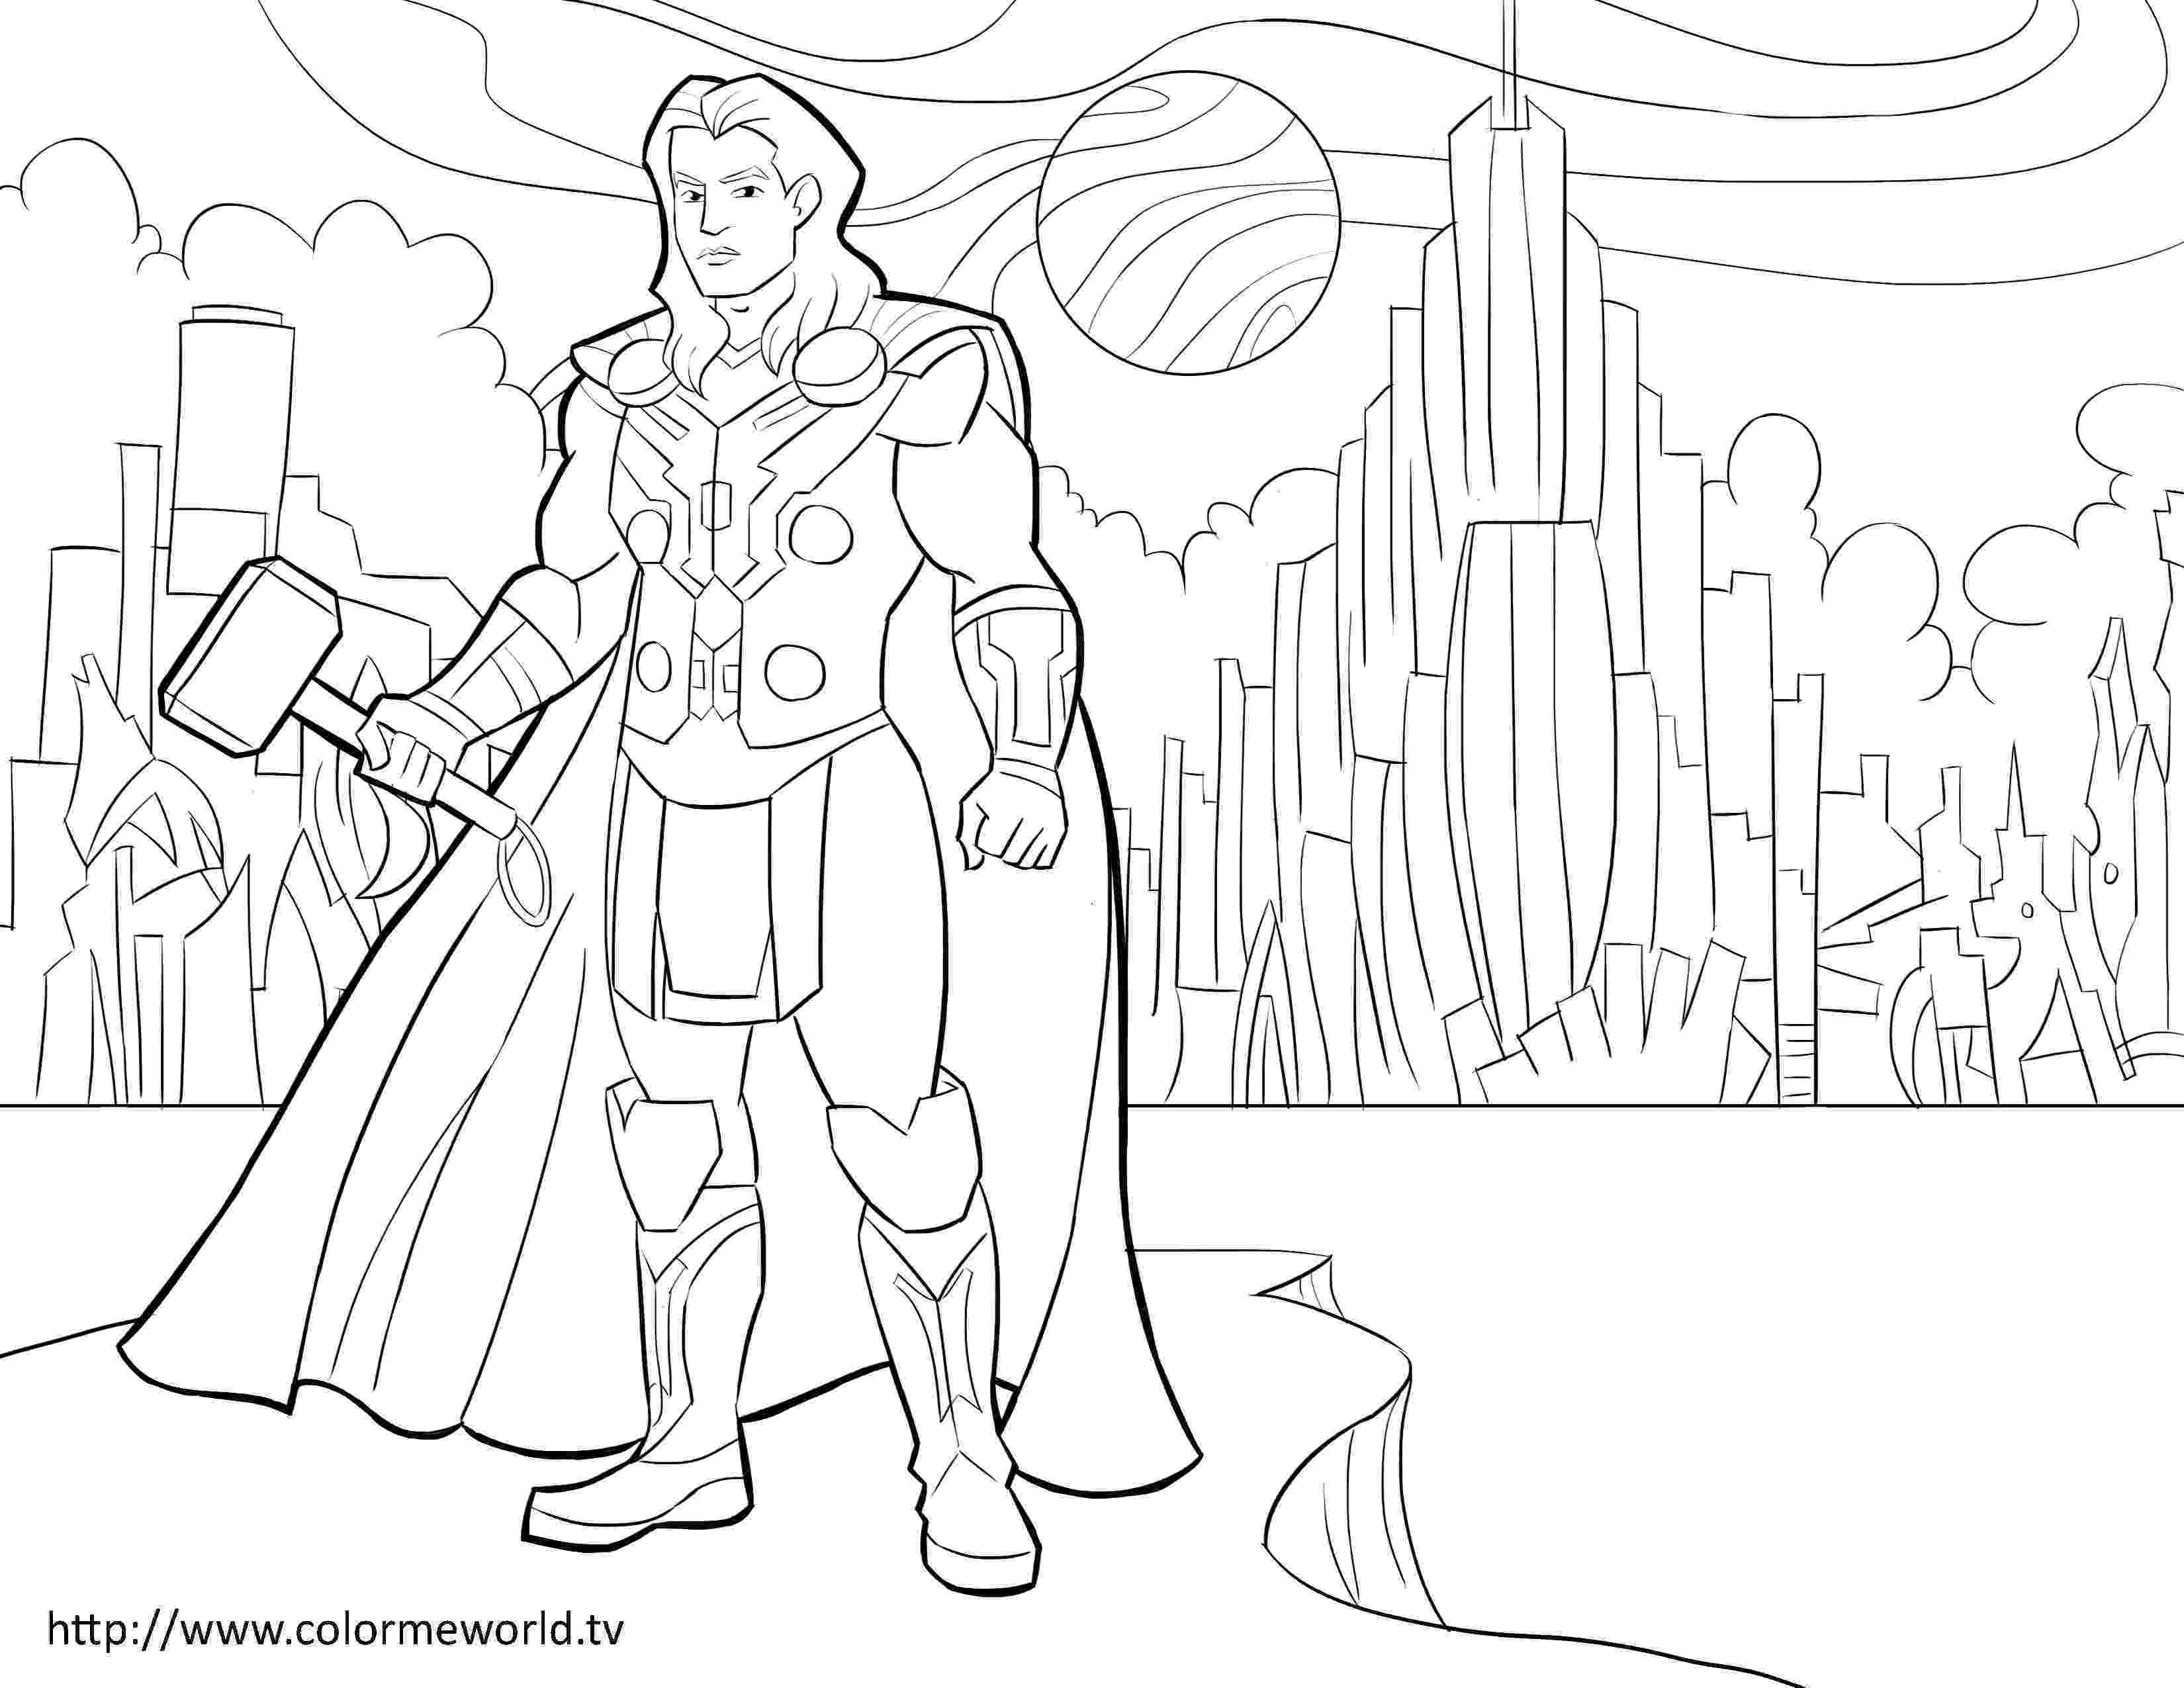 avengers thor colouring pages thor pdf printable coloring page avengers coloring avengers pages colouring thor